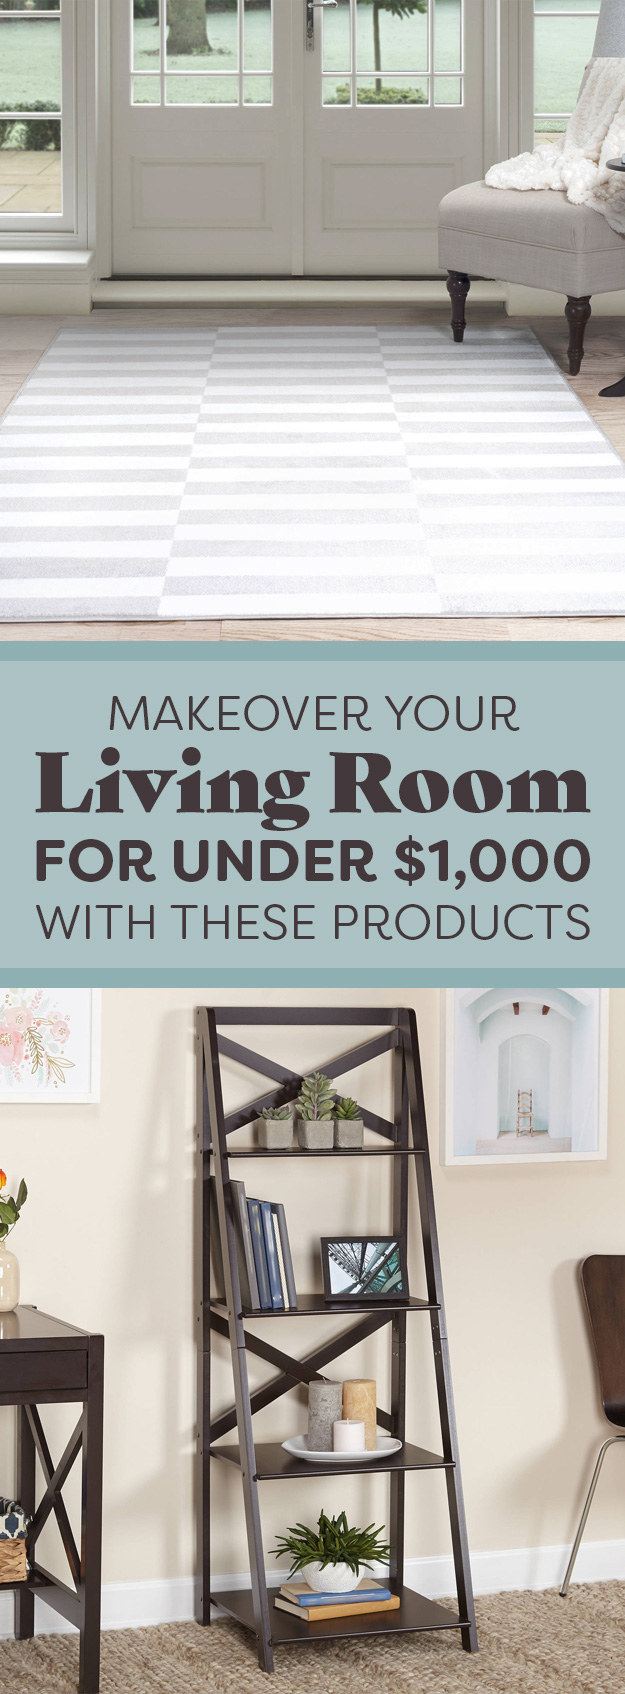 Everything you need to make over your living room for for Living room under 1000